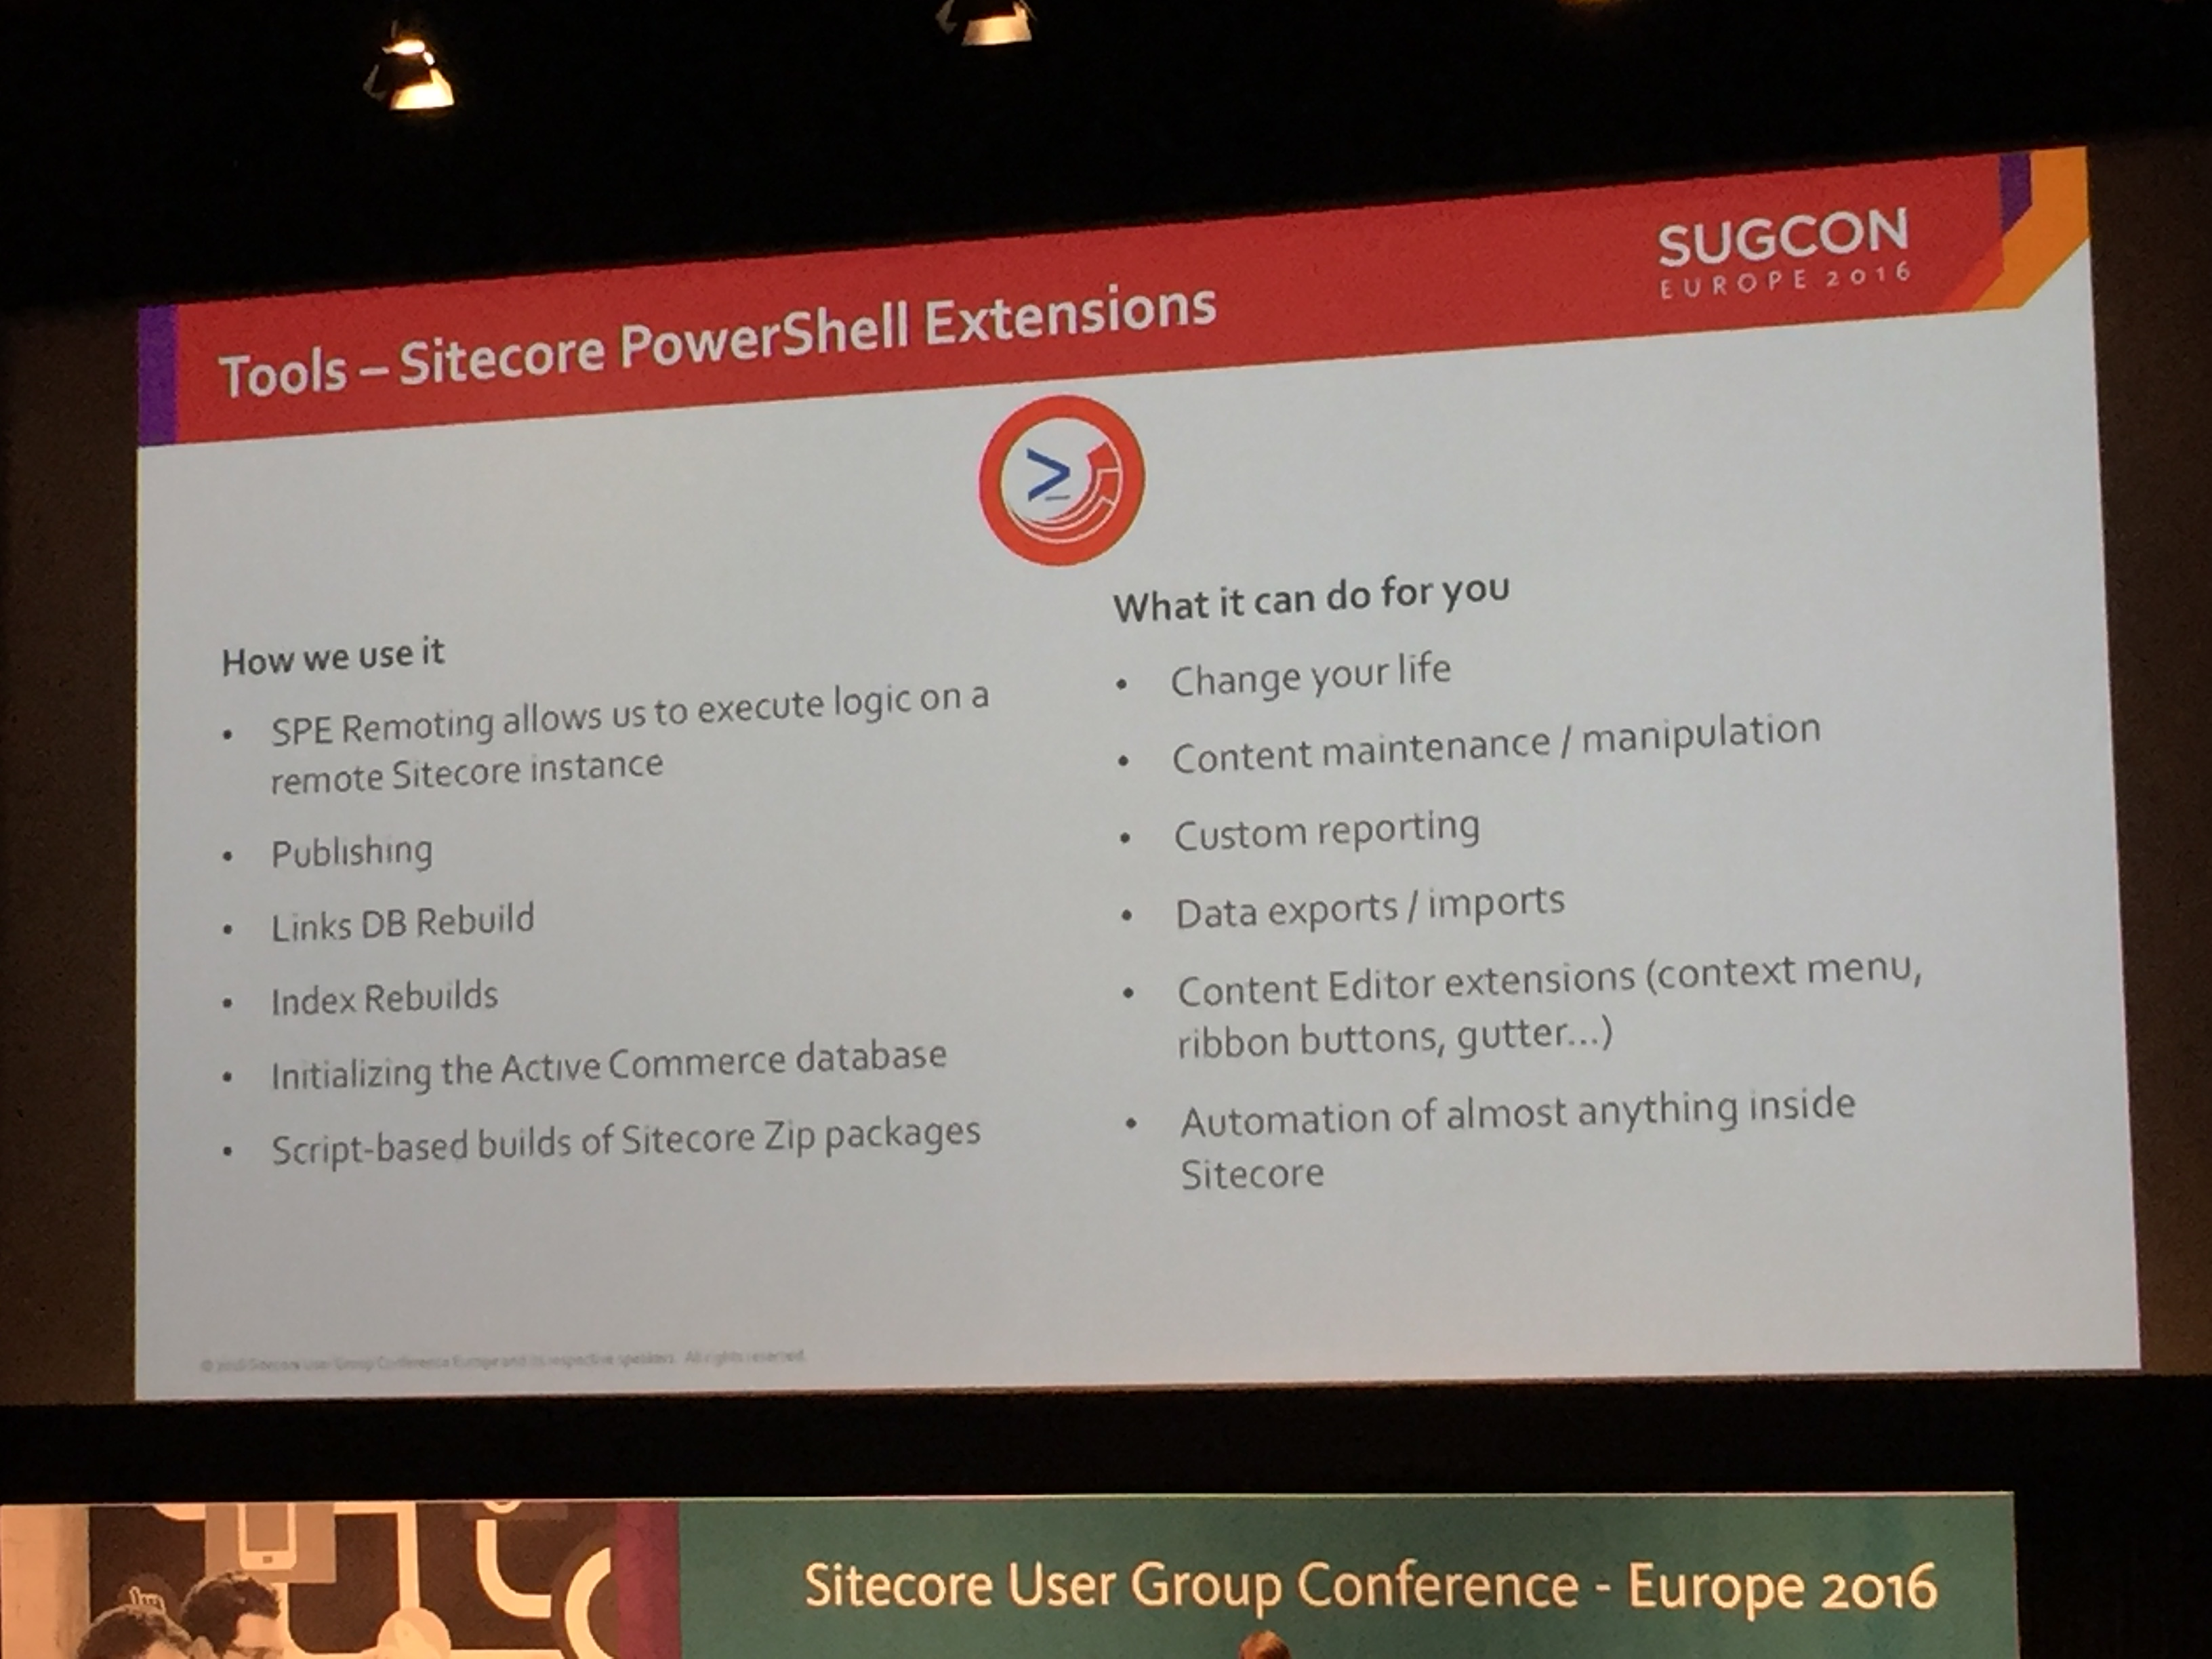 My thoughts on SUGCON 2016 – Day 2 - Flux Digital Blog